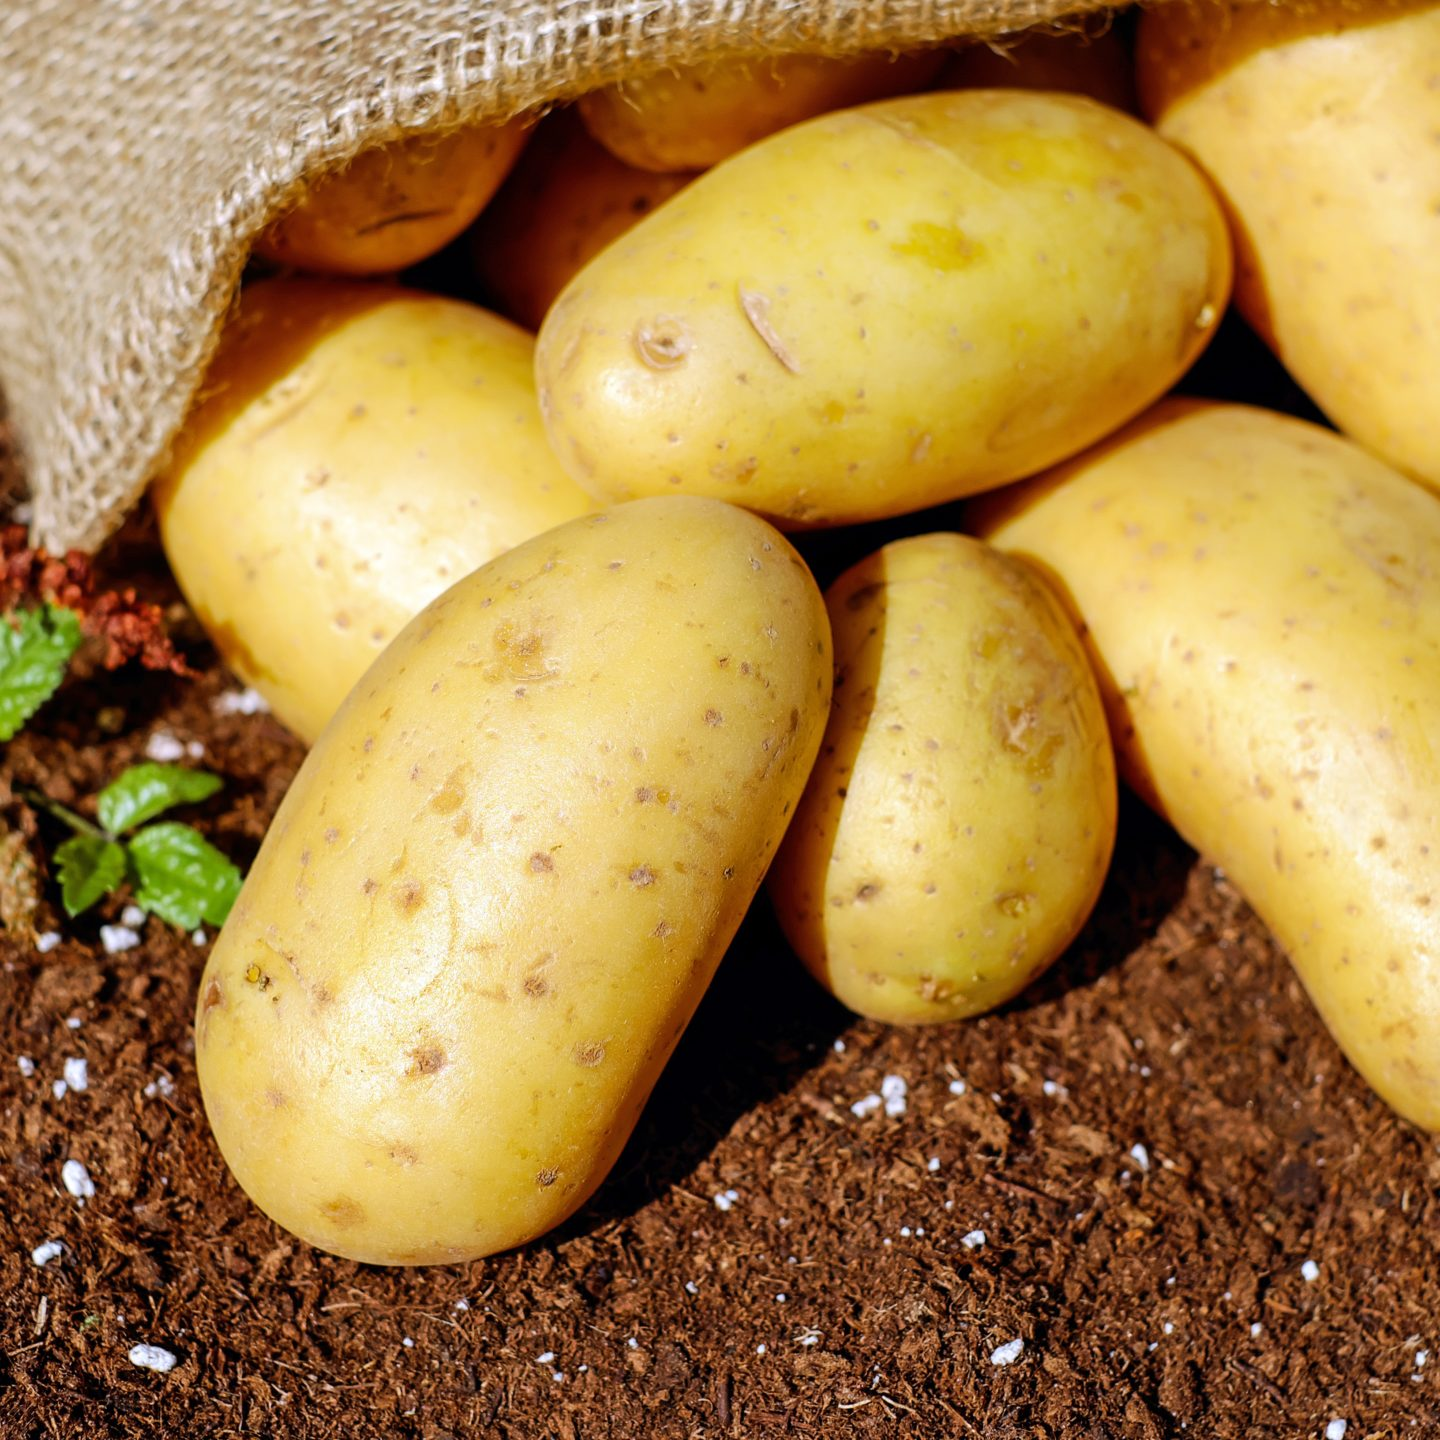 The US Environmental Protection Agency approved three new varieties of GMO potatoes